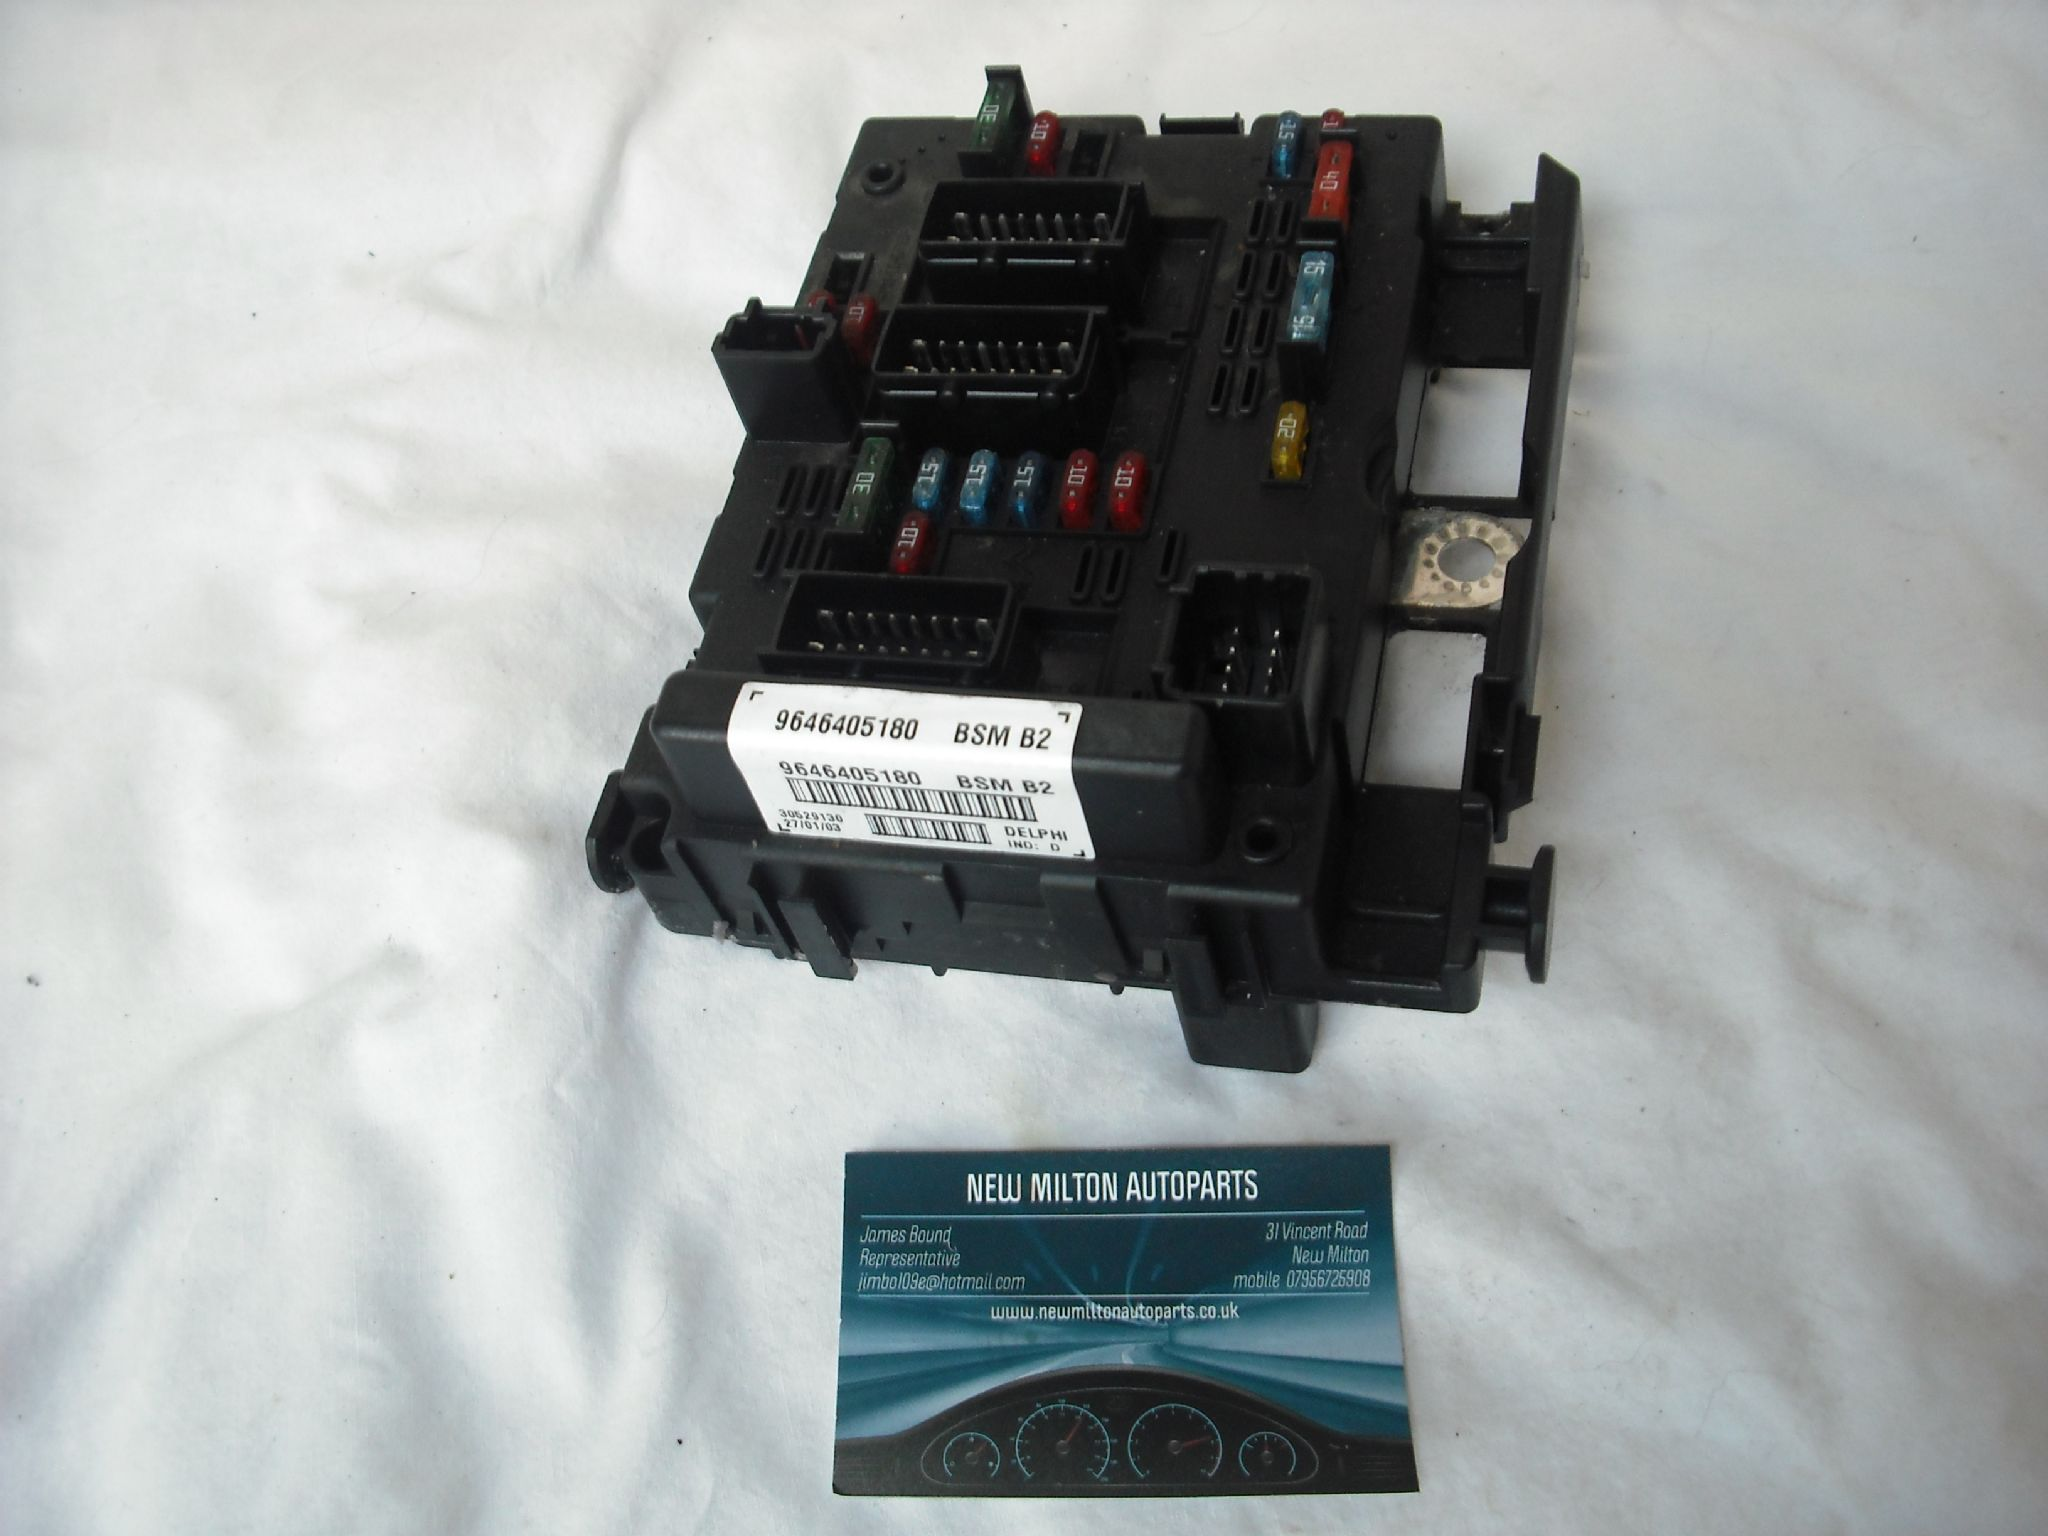 Peugeot 306 Xr Fuse Box Trusted Wiring Diagram Acadia Engine Bay 307 Electrical Work U2022 Gmc